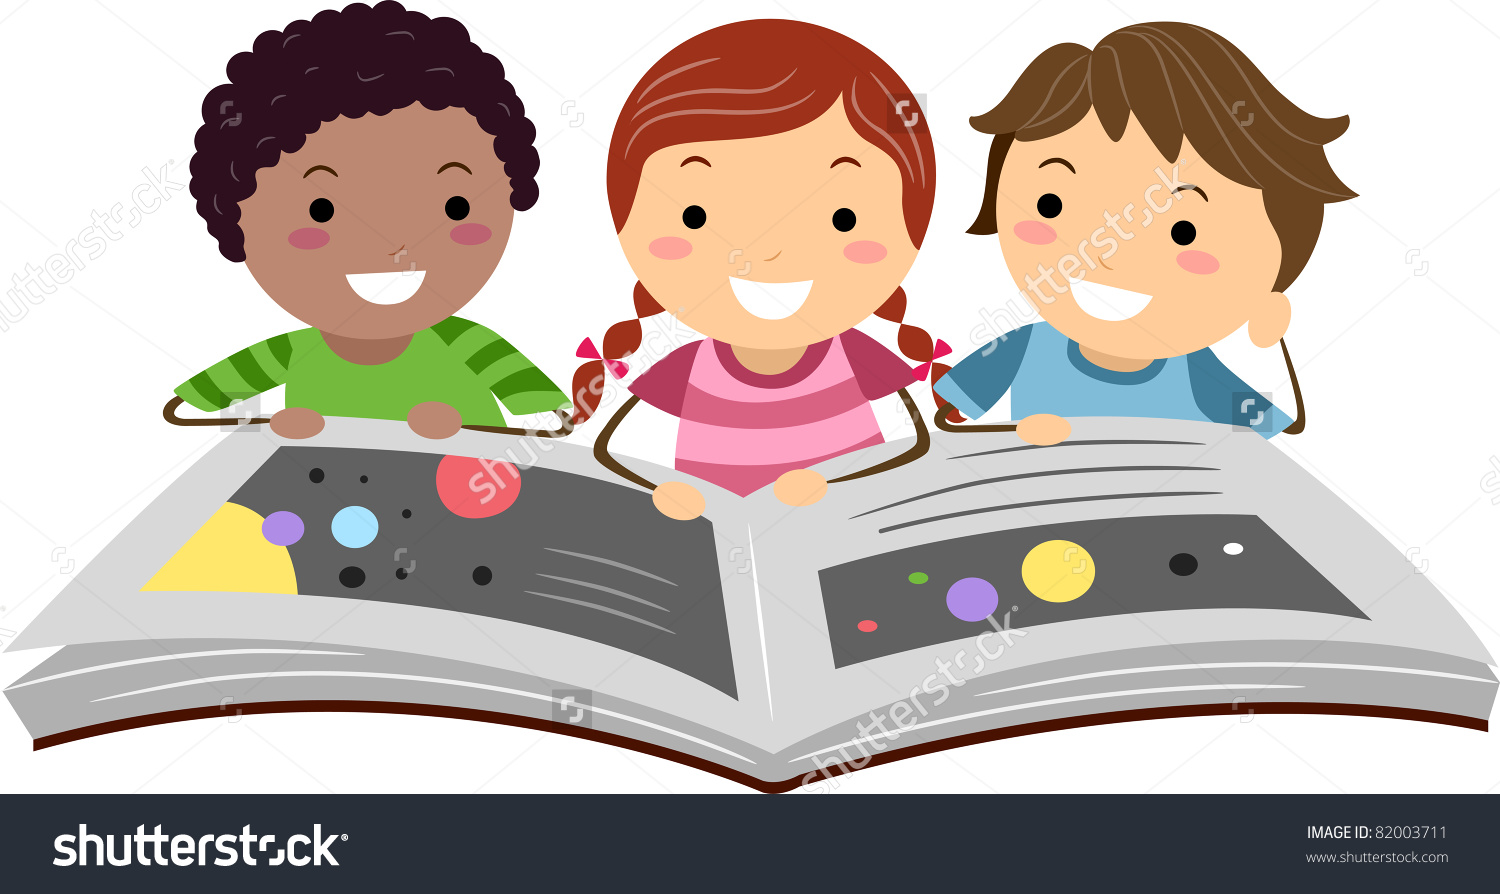 122 Kids Reading Clipart.